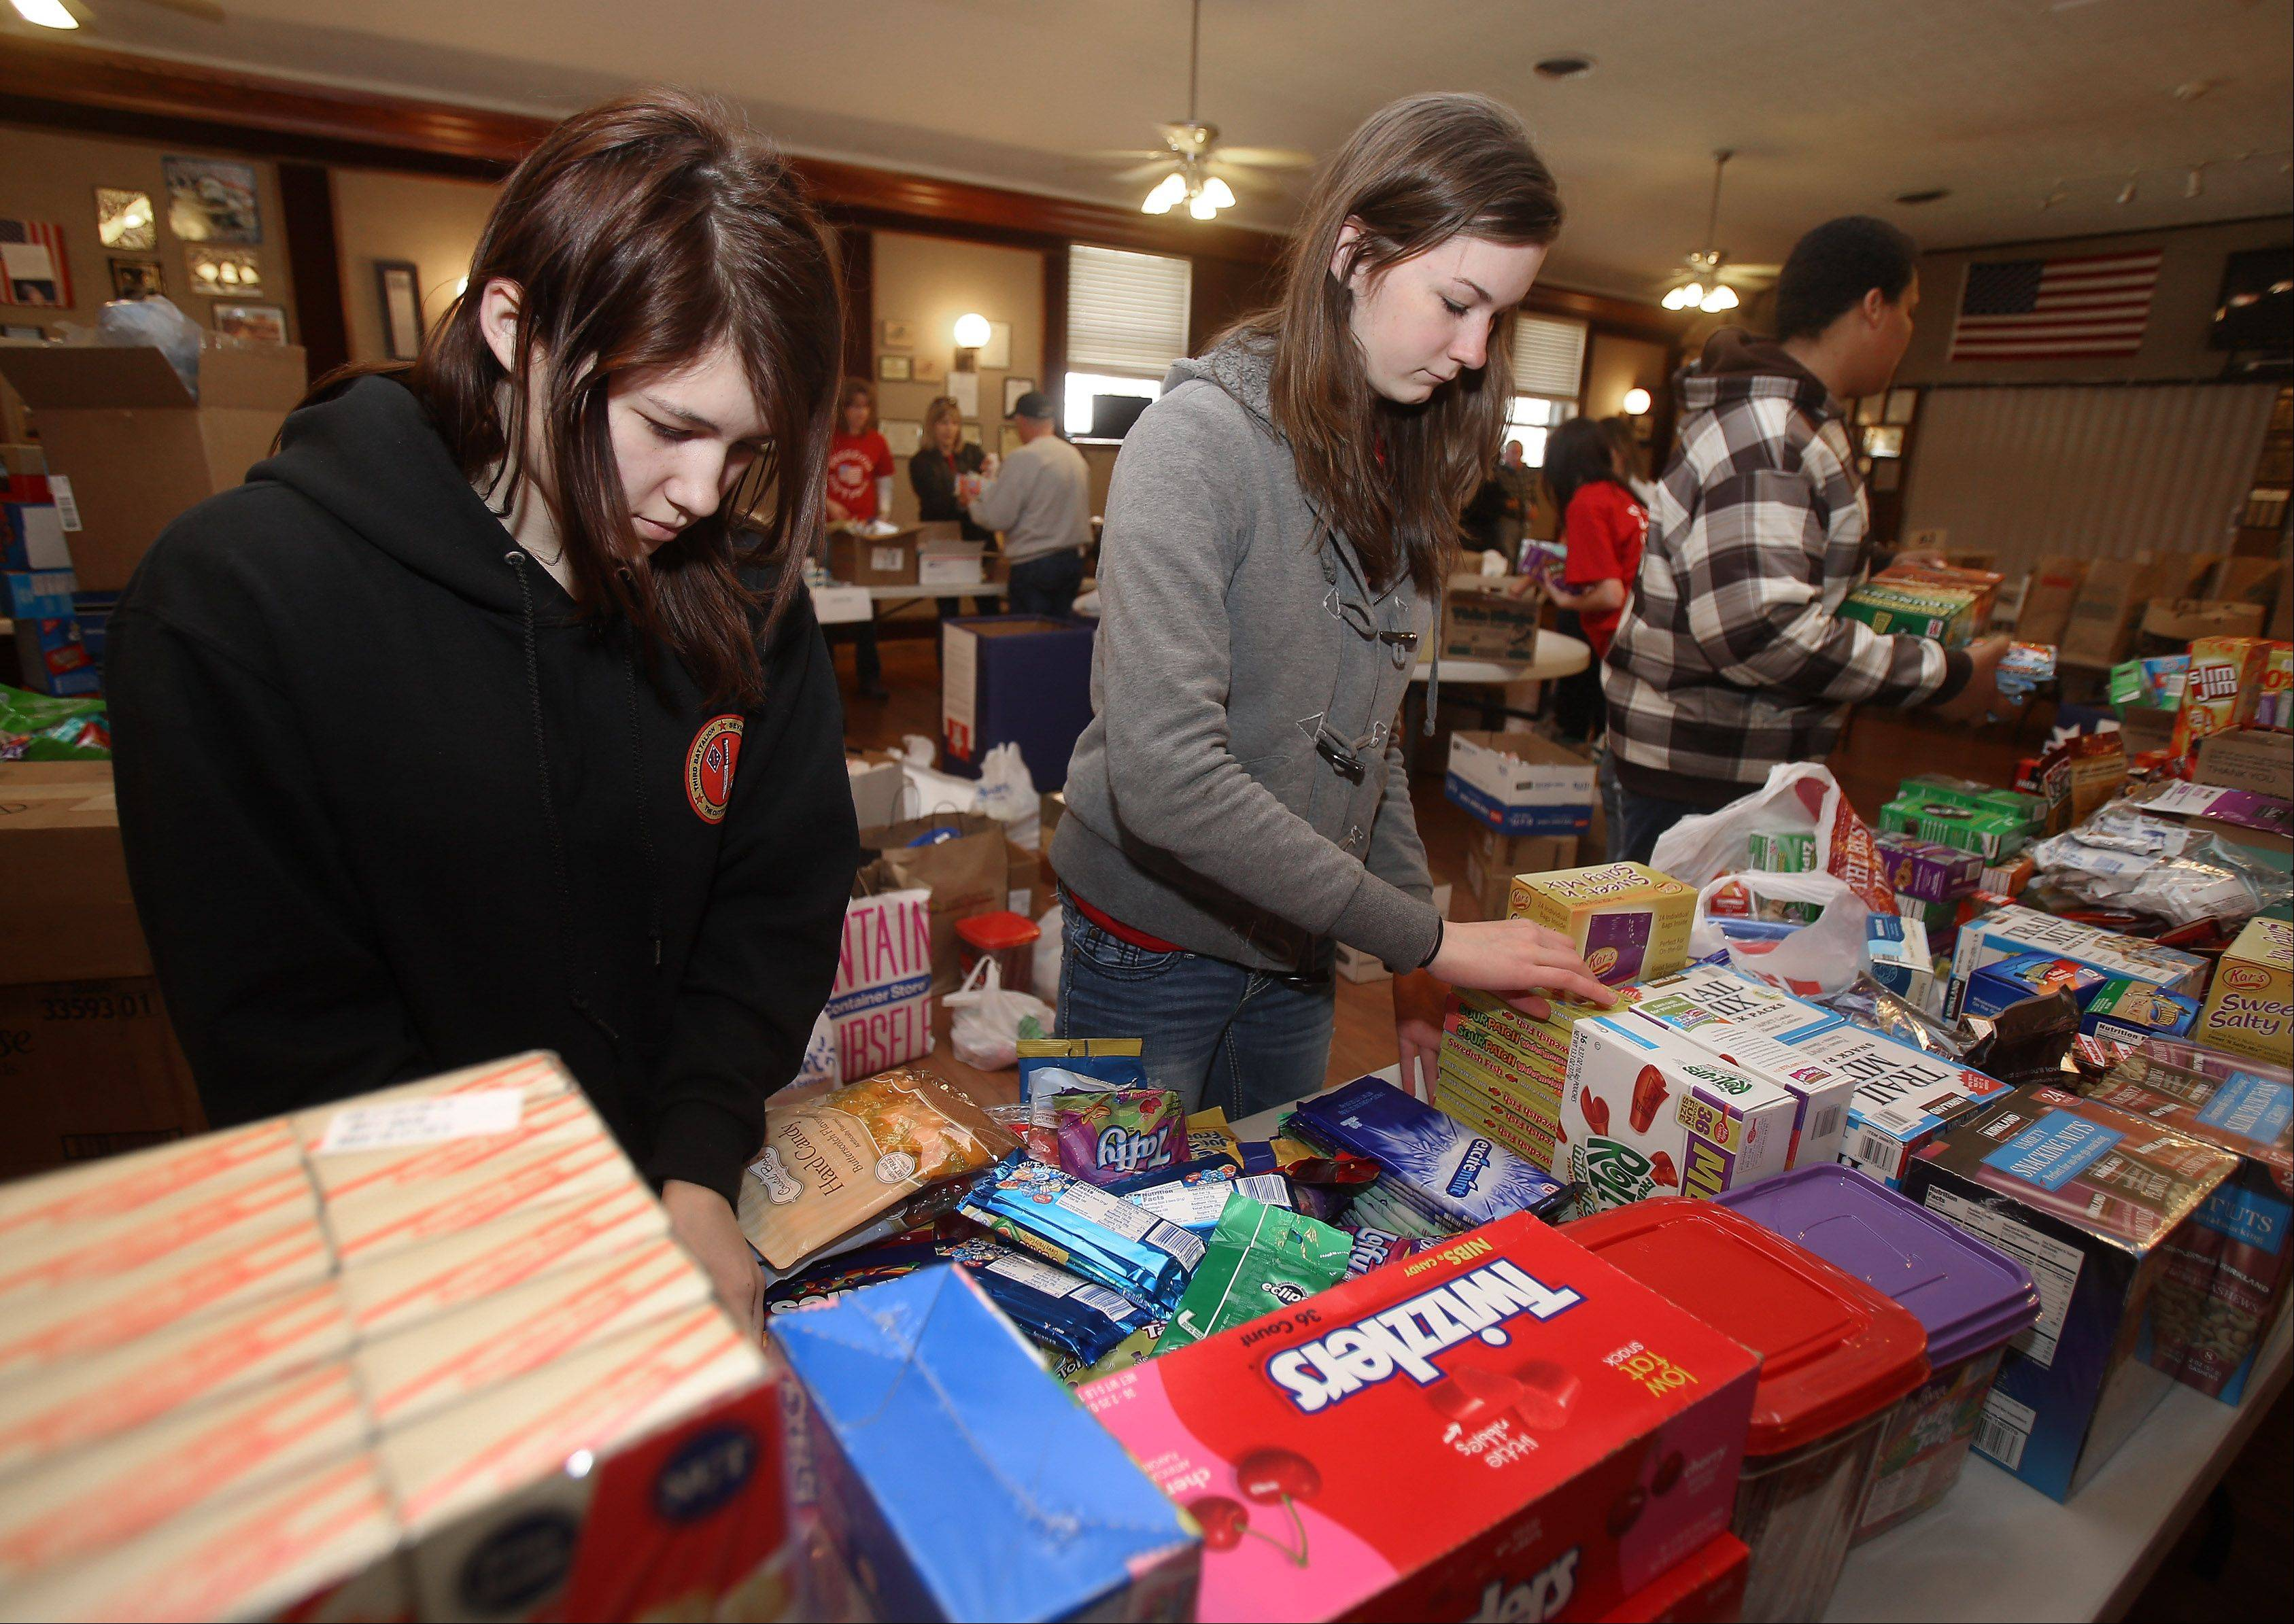 Cousins Joanne Savage, left, and Rebecca Savage, fill boxes during a collection drive for the military overseas Sunday at the Arlington Legion Post 208 in Arlington Heights. The event is organized by the family of LCpl. James B. Stack who was killed in Afghanistan in November 2010.